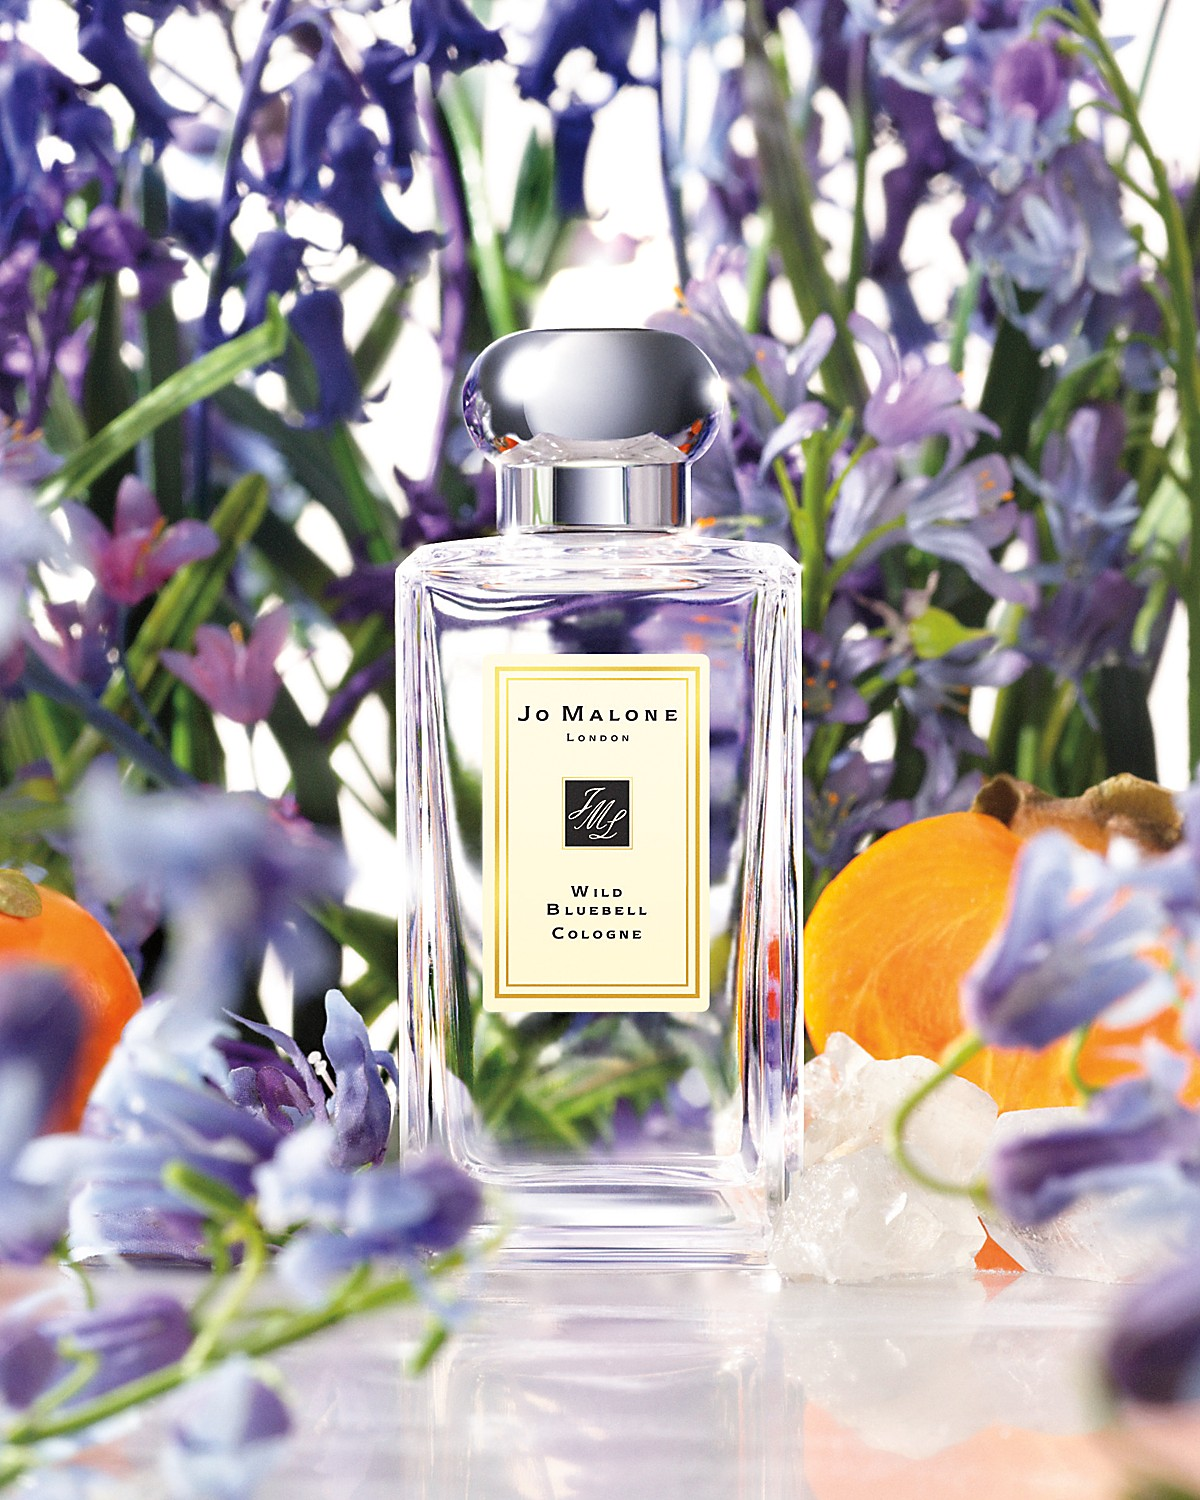 Wild Bluebell by Jo Malone perfume bottle